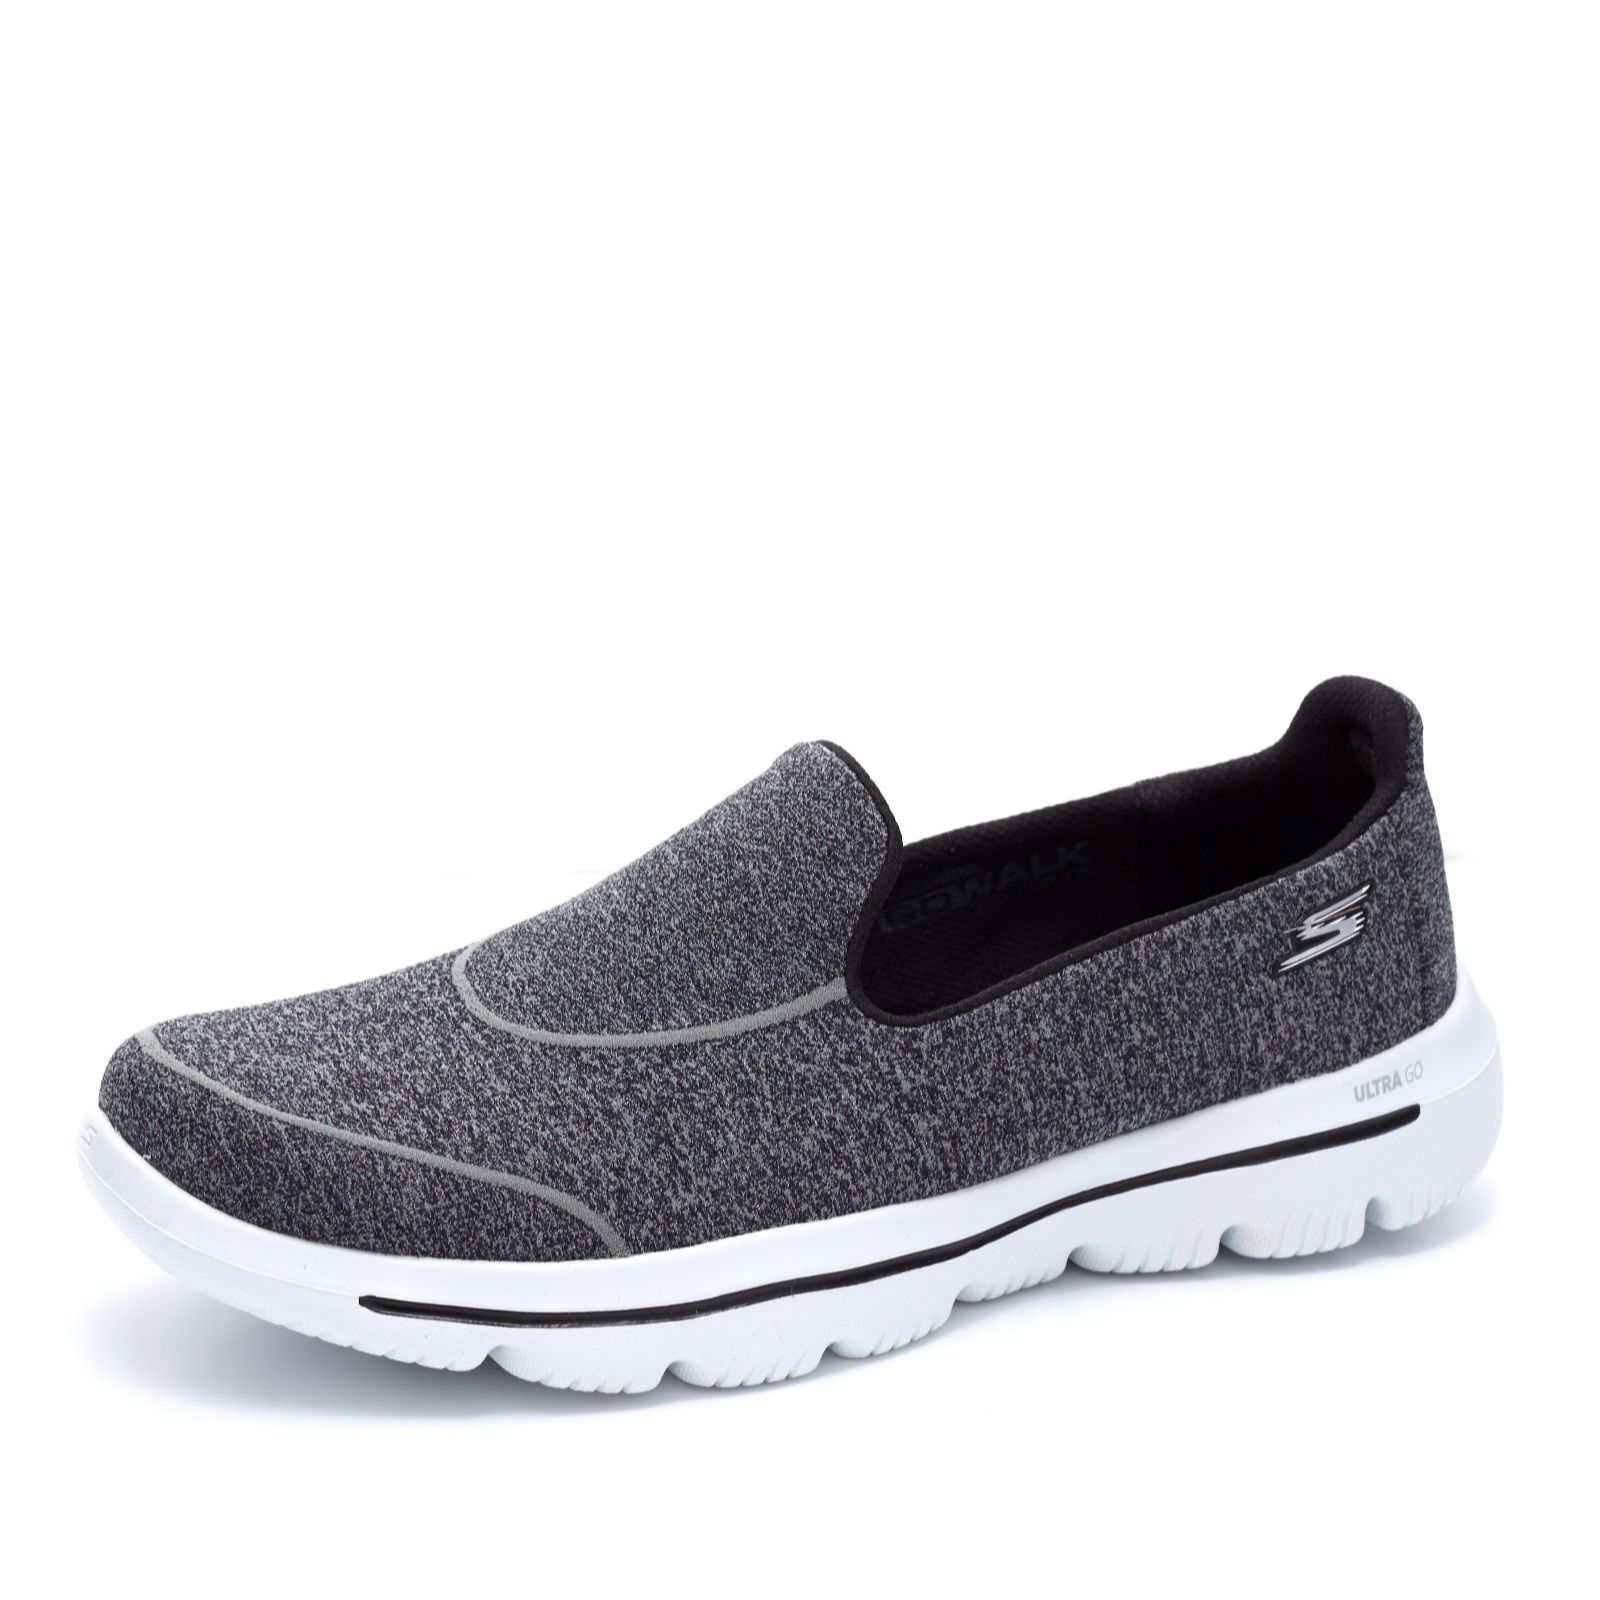 1e0264f059e5d Skechers GOwalk Evolution Ultra Dedicate Slip On Shoe - QVC UK